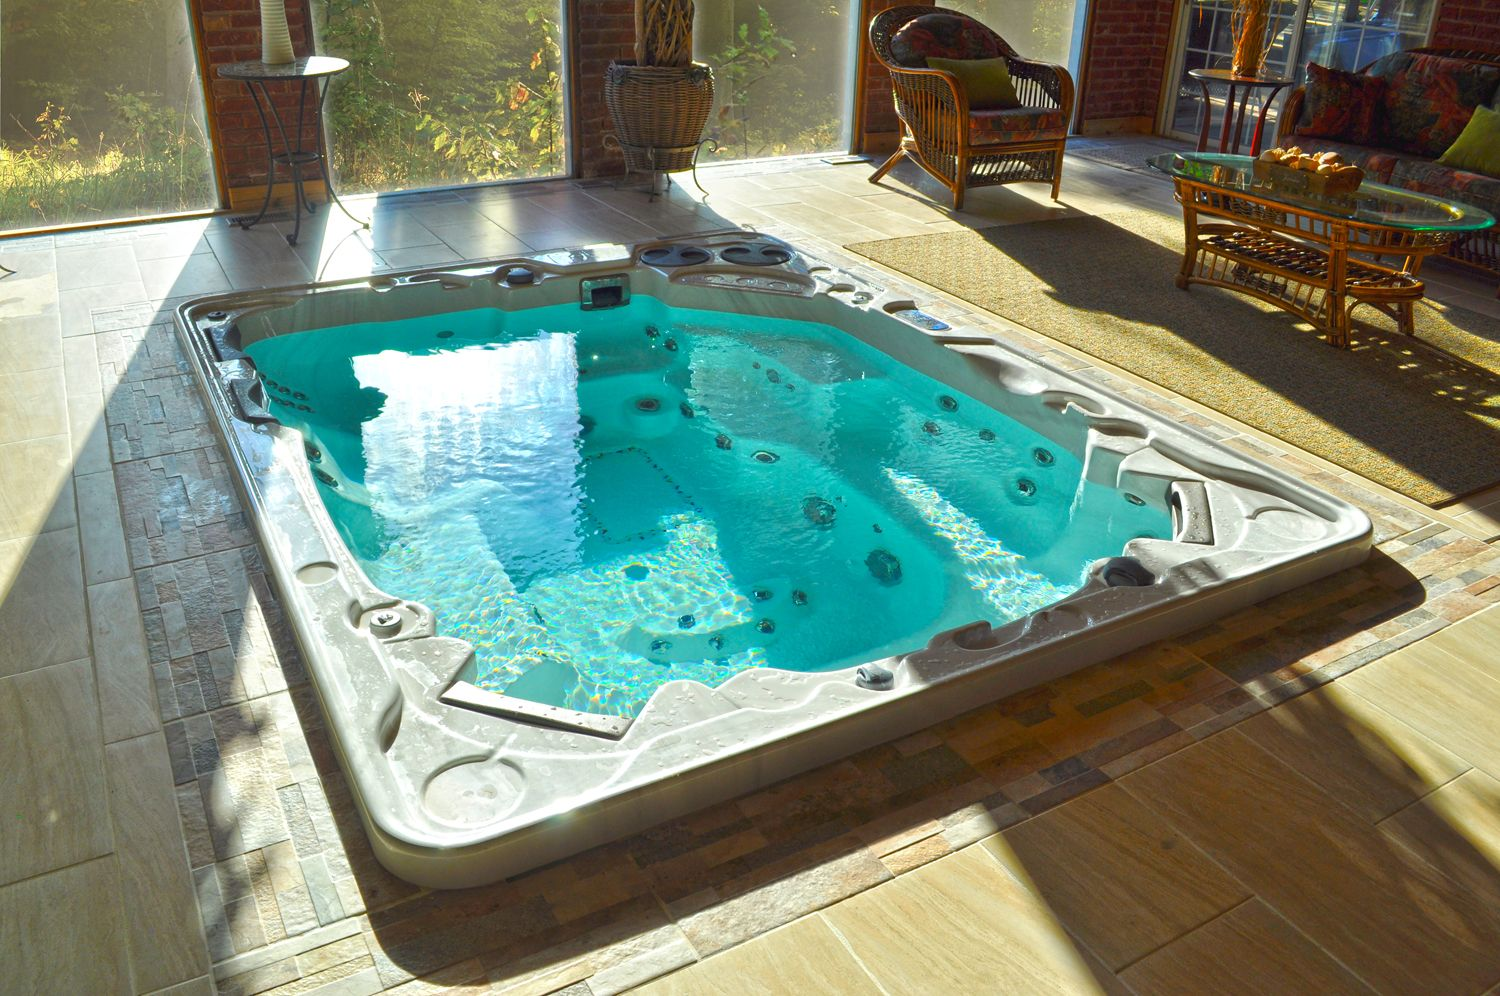 Hydropool Self Cleaning 1038 Seats 10 People Amazing Party Hot Tub Cleaning Hot Tub Hot Tub Hot Tub Swim Spa